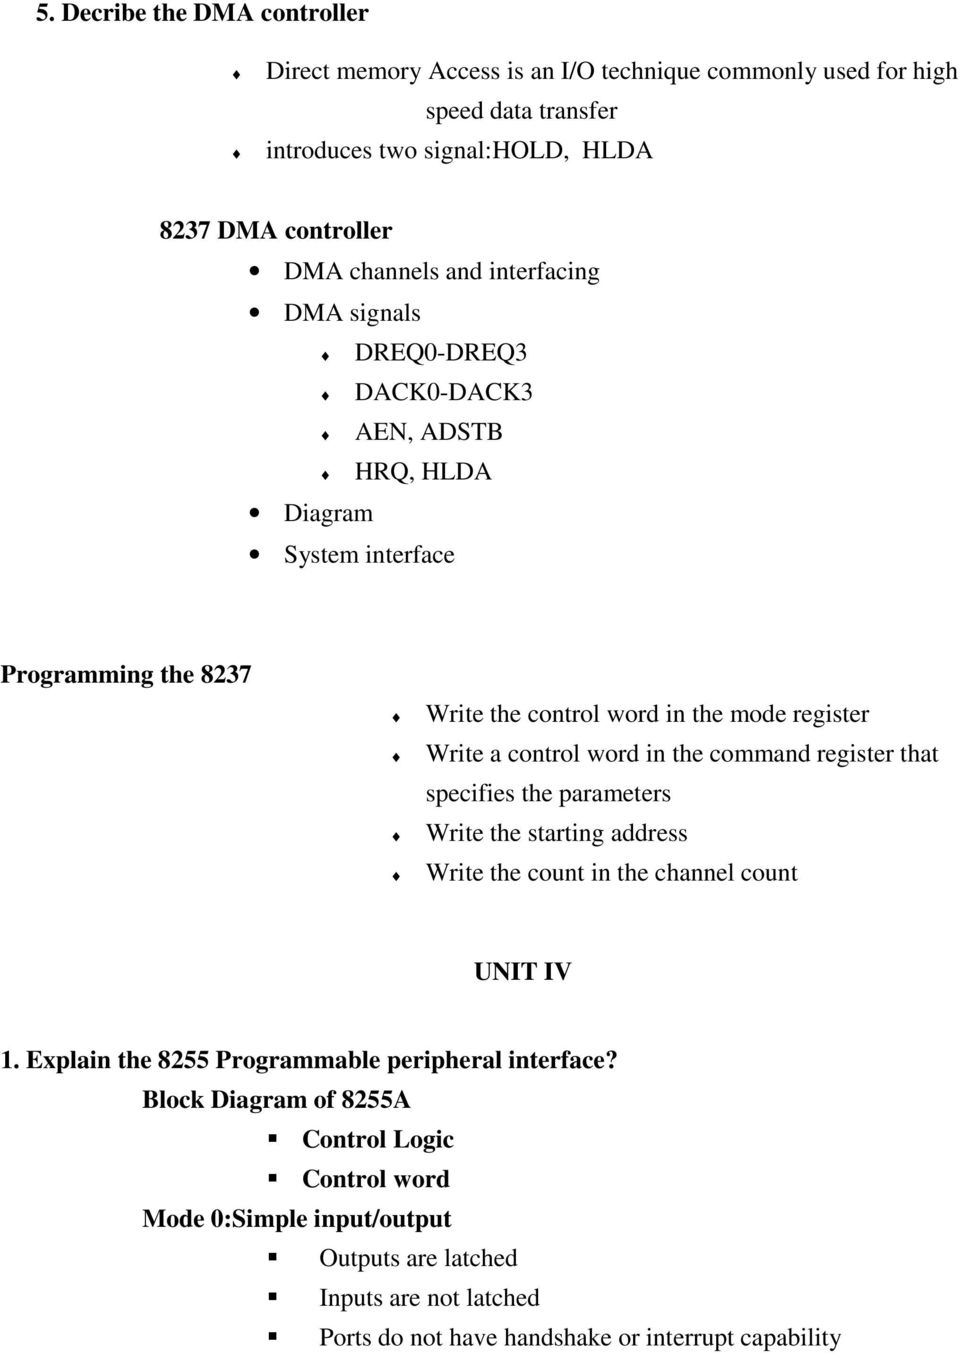 hight resolution of keyboard interfacing with 8086 using 8255 pdf 153 download mirror 1